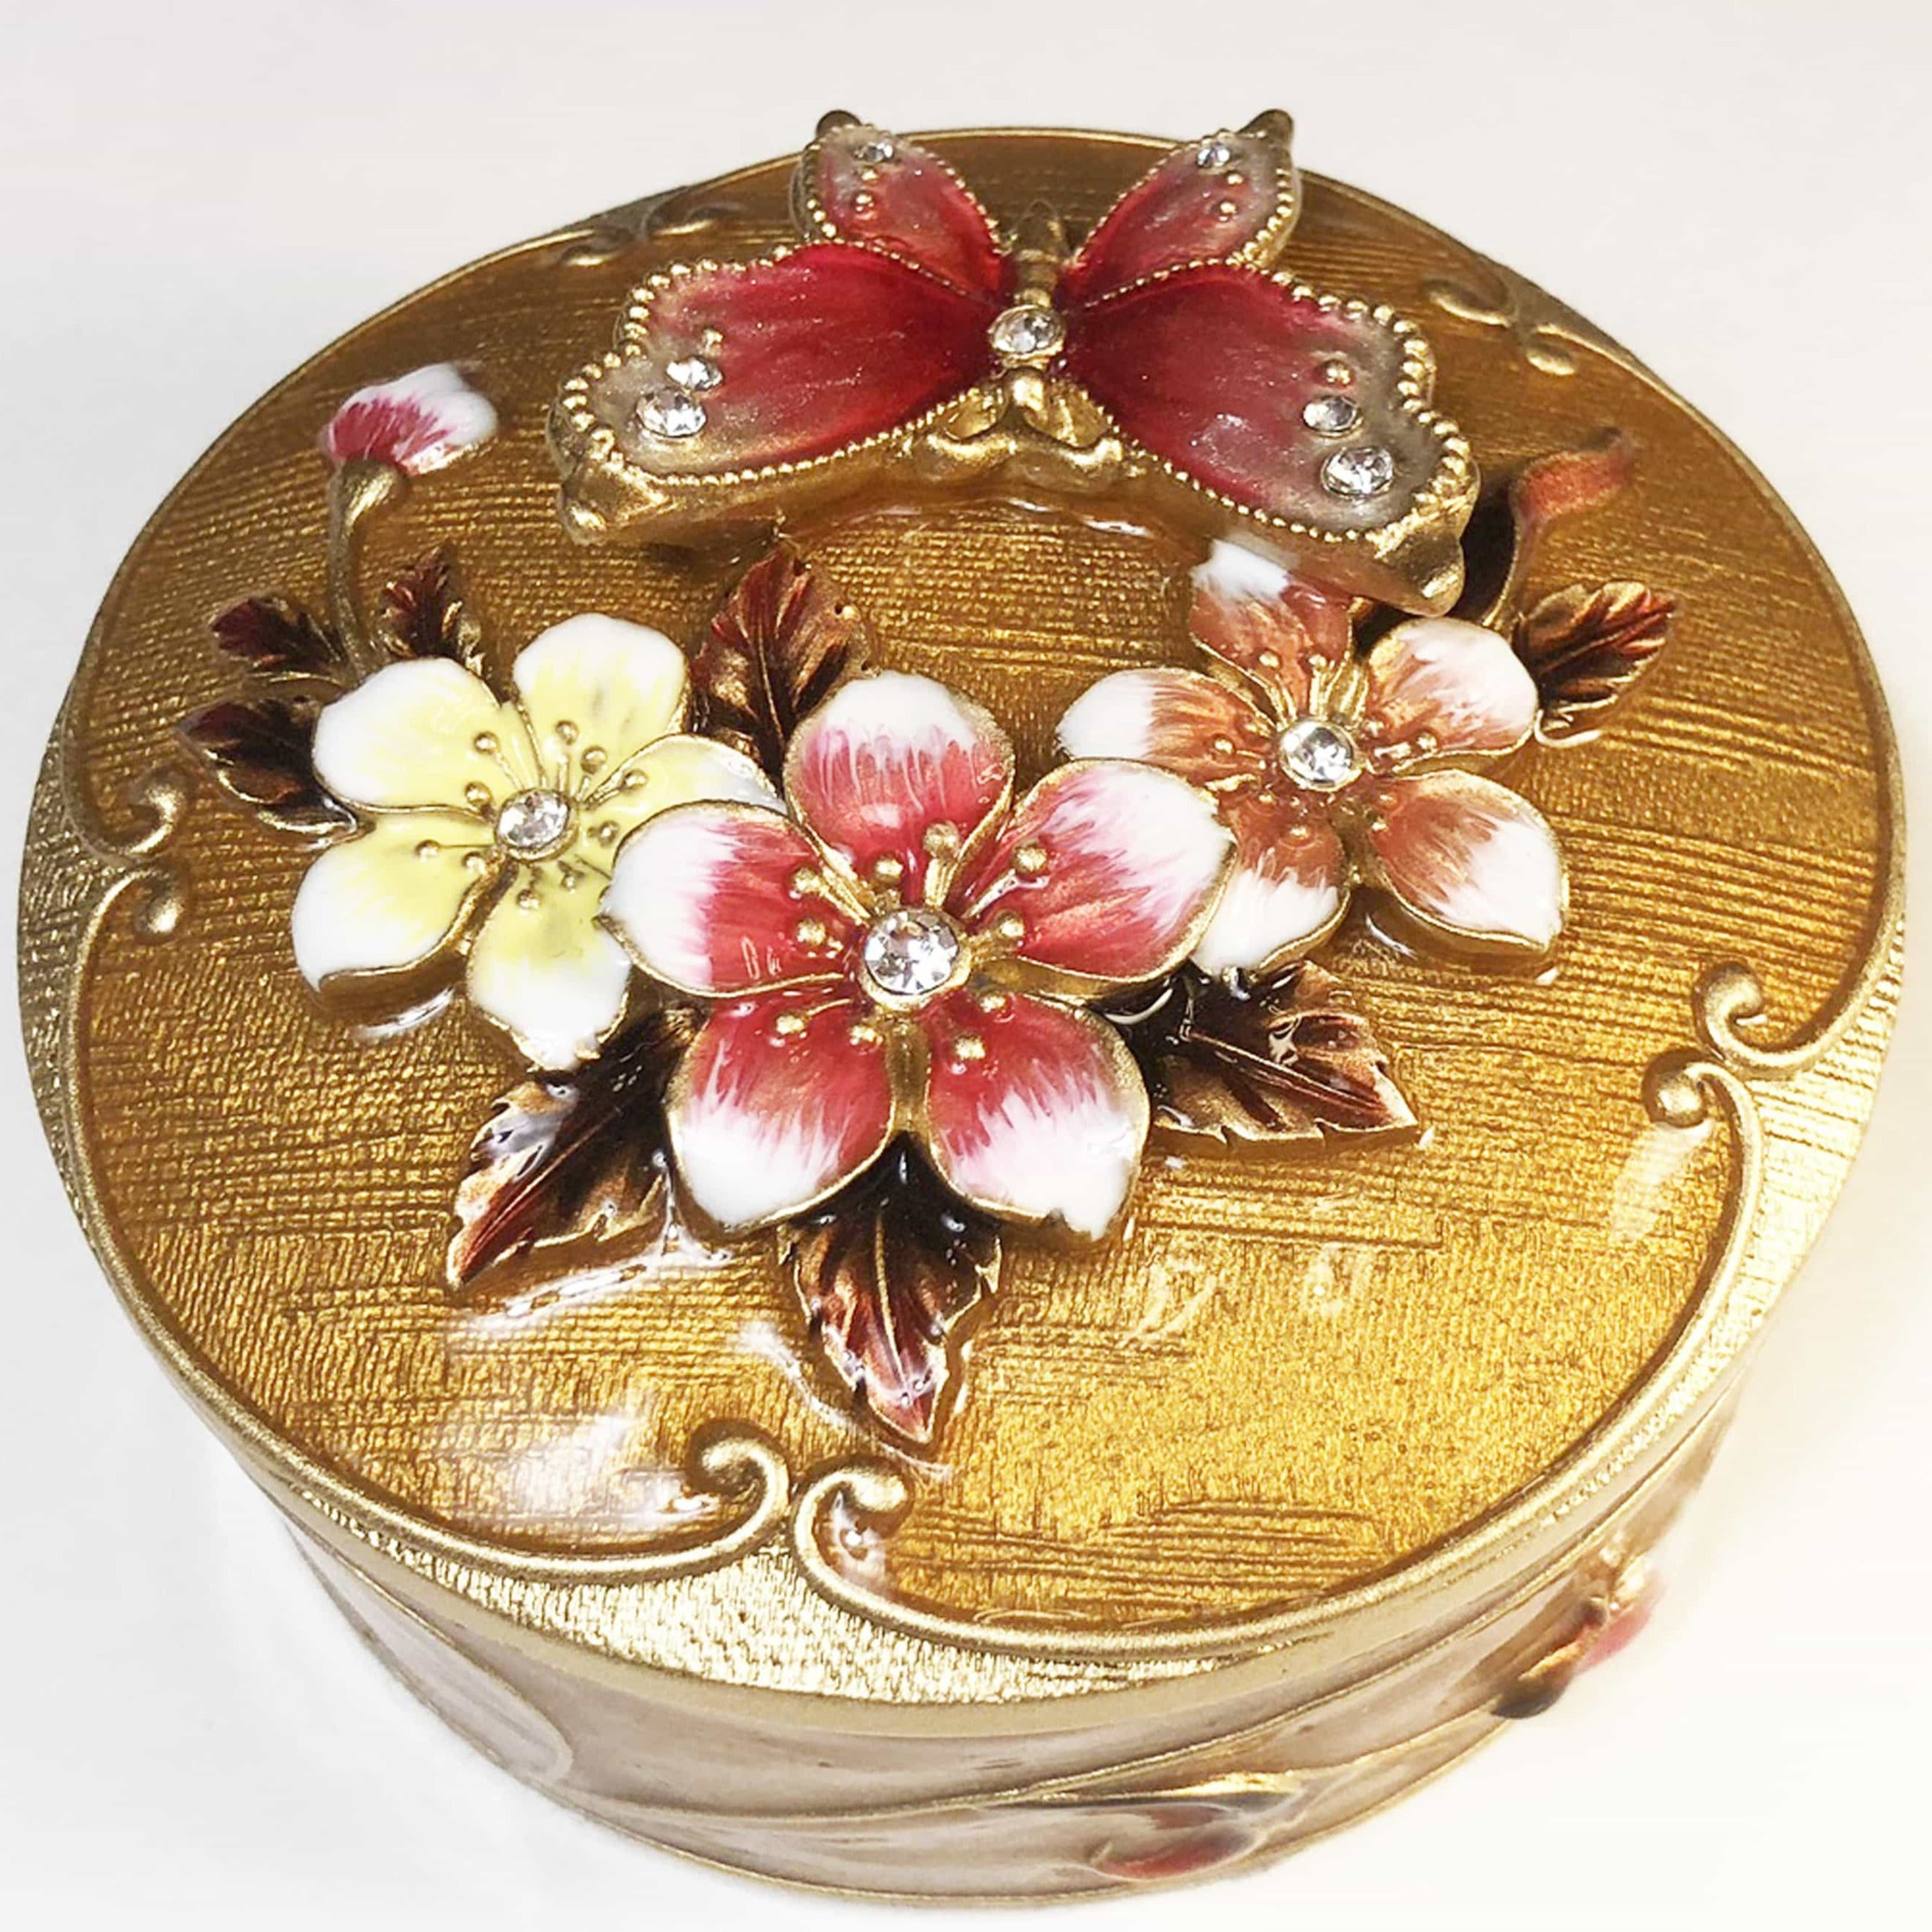 Trinket Box - Round Trinket Box, With Metal Butterfly, Golden Brown With Gold And Clear Rhinestones,Trinket Box